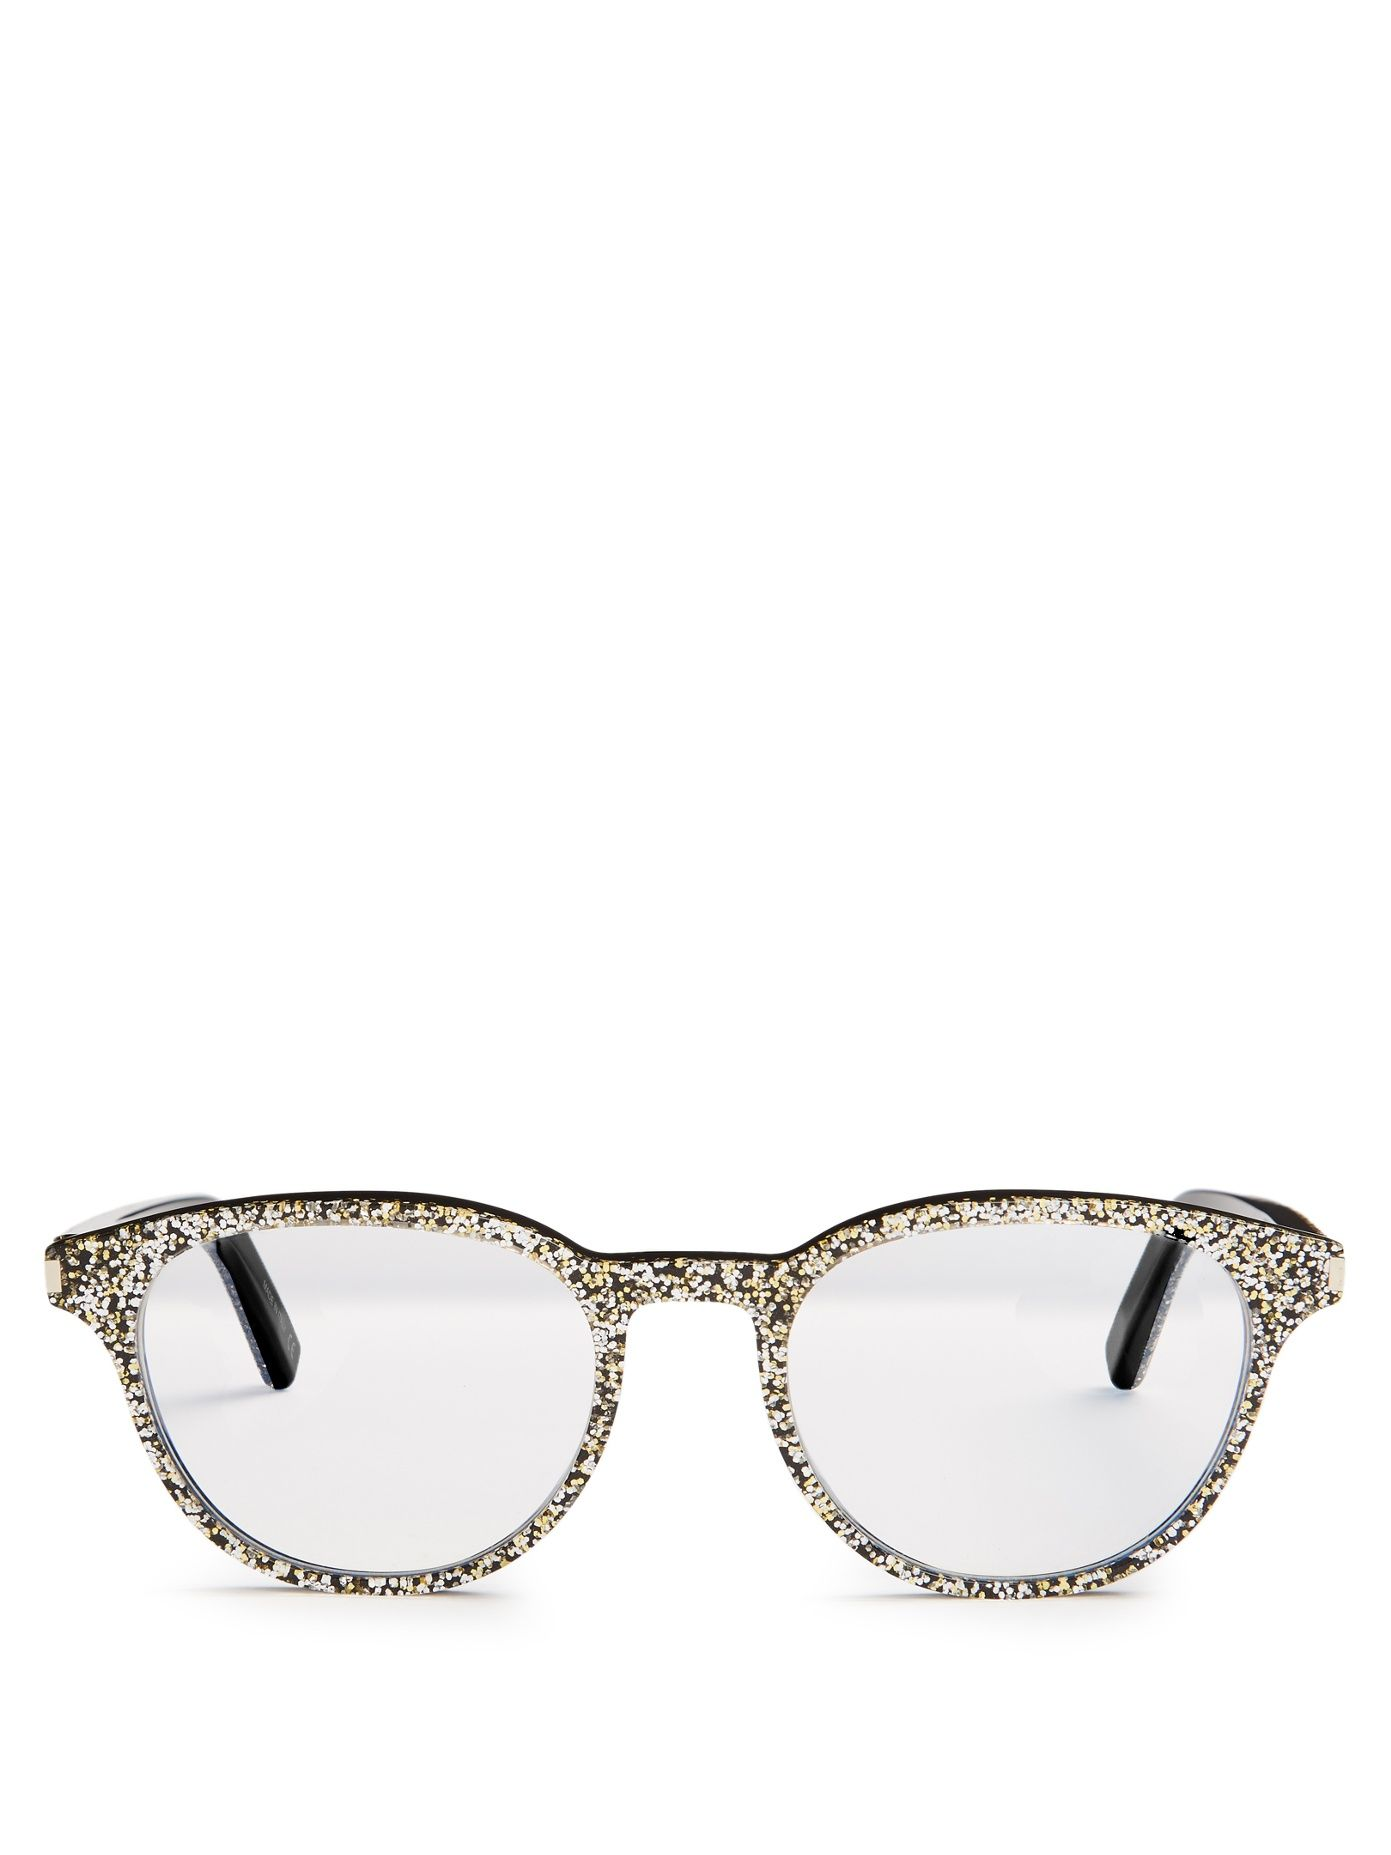 4a981d6103 Click here to buy Saint Laurent Round-frame glitter glasses at  MATCHESFASHION.COM